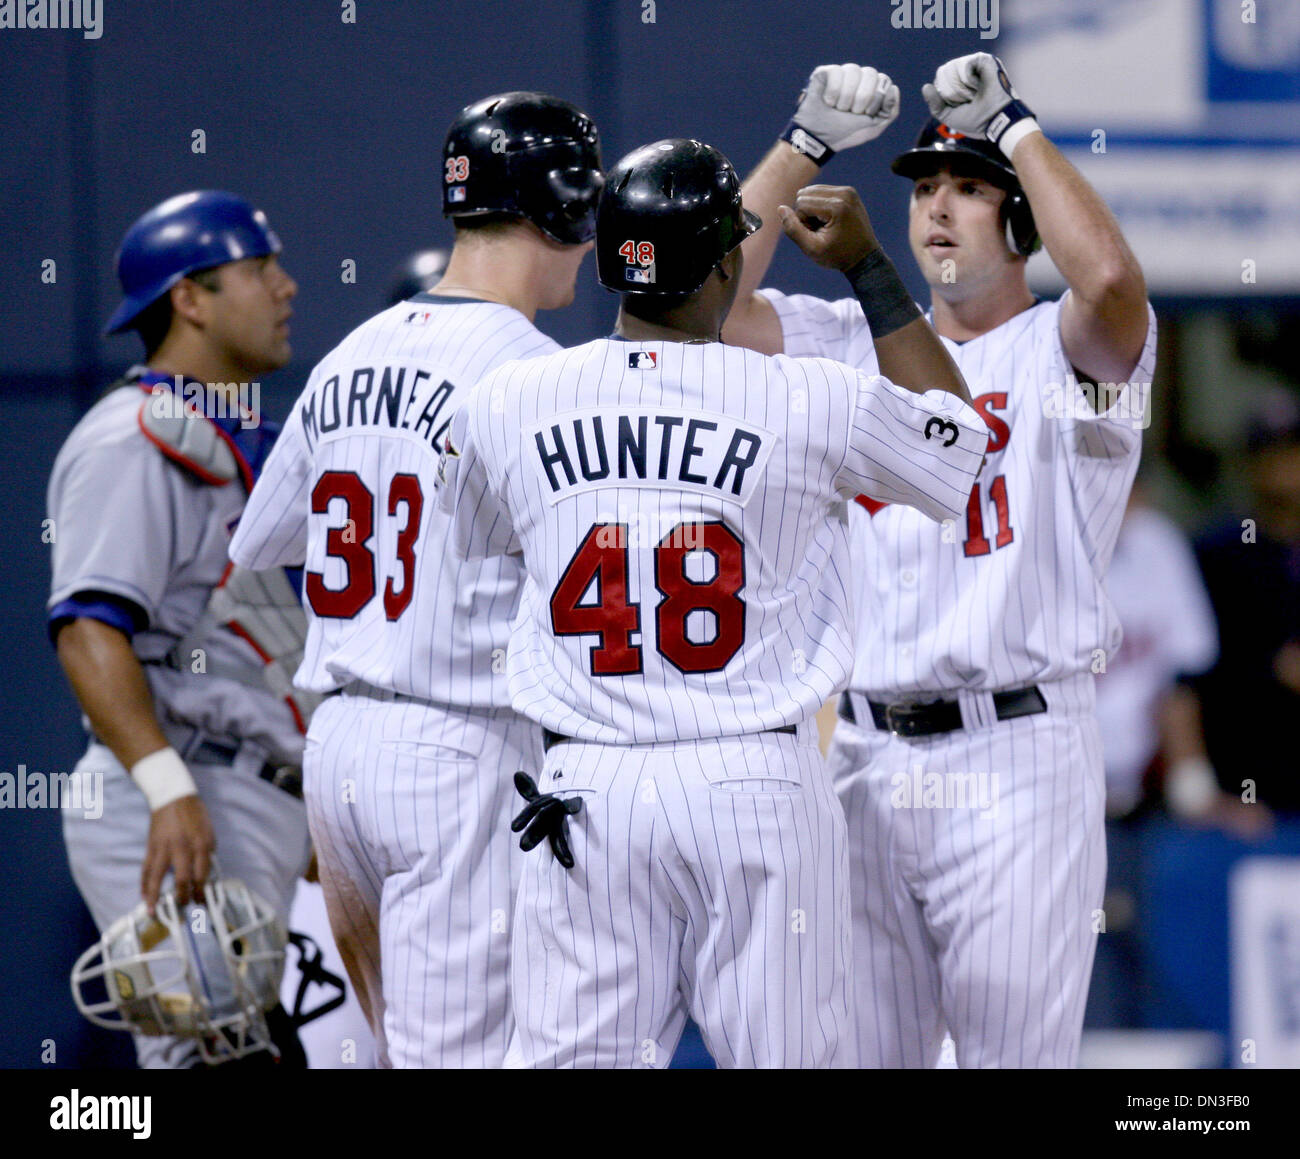 Jun 31, 2006; Minneapolis, MN, USA; Minnesota Twins' Josh Rabe (right) knocked a home run off the Texas Rangers' starter John Rheinecker to bring in Justin Morneau (left) and Torii Hunter (center) who congratulated him at the plate. The Twins defeated the Rangers 15-2 at the Metrodome in Minneapolis, Minnesota, Monday, July 31, 2006.  Mandatory Credit: Photo by Jeff Wheeler/Minneap Stock Photo